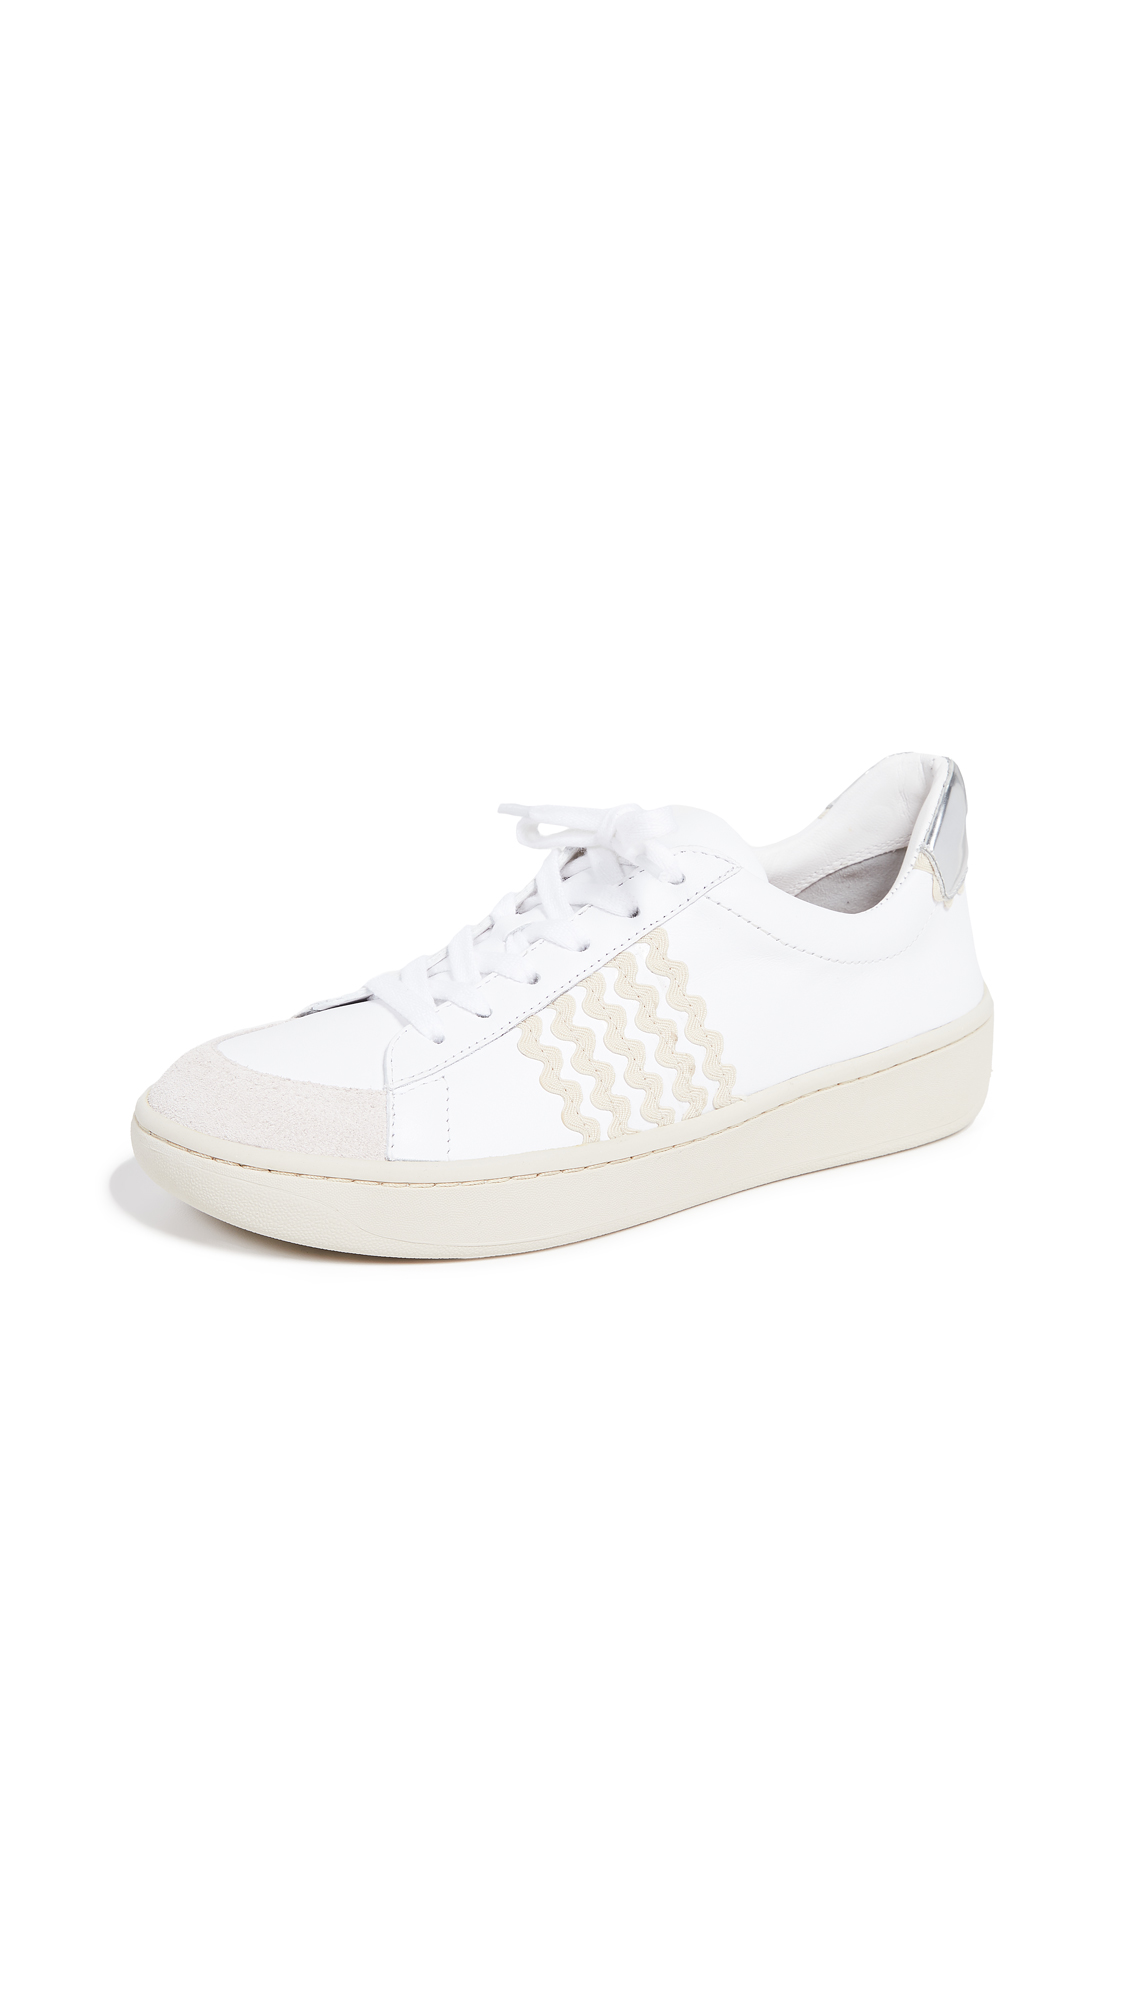 Loeffler Randall Elliot Sneakers - White/Natural